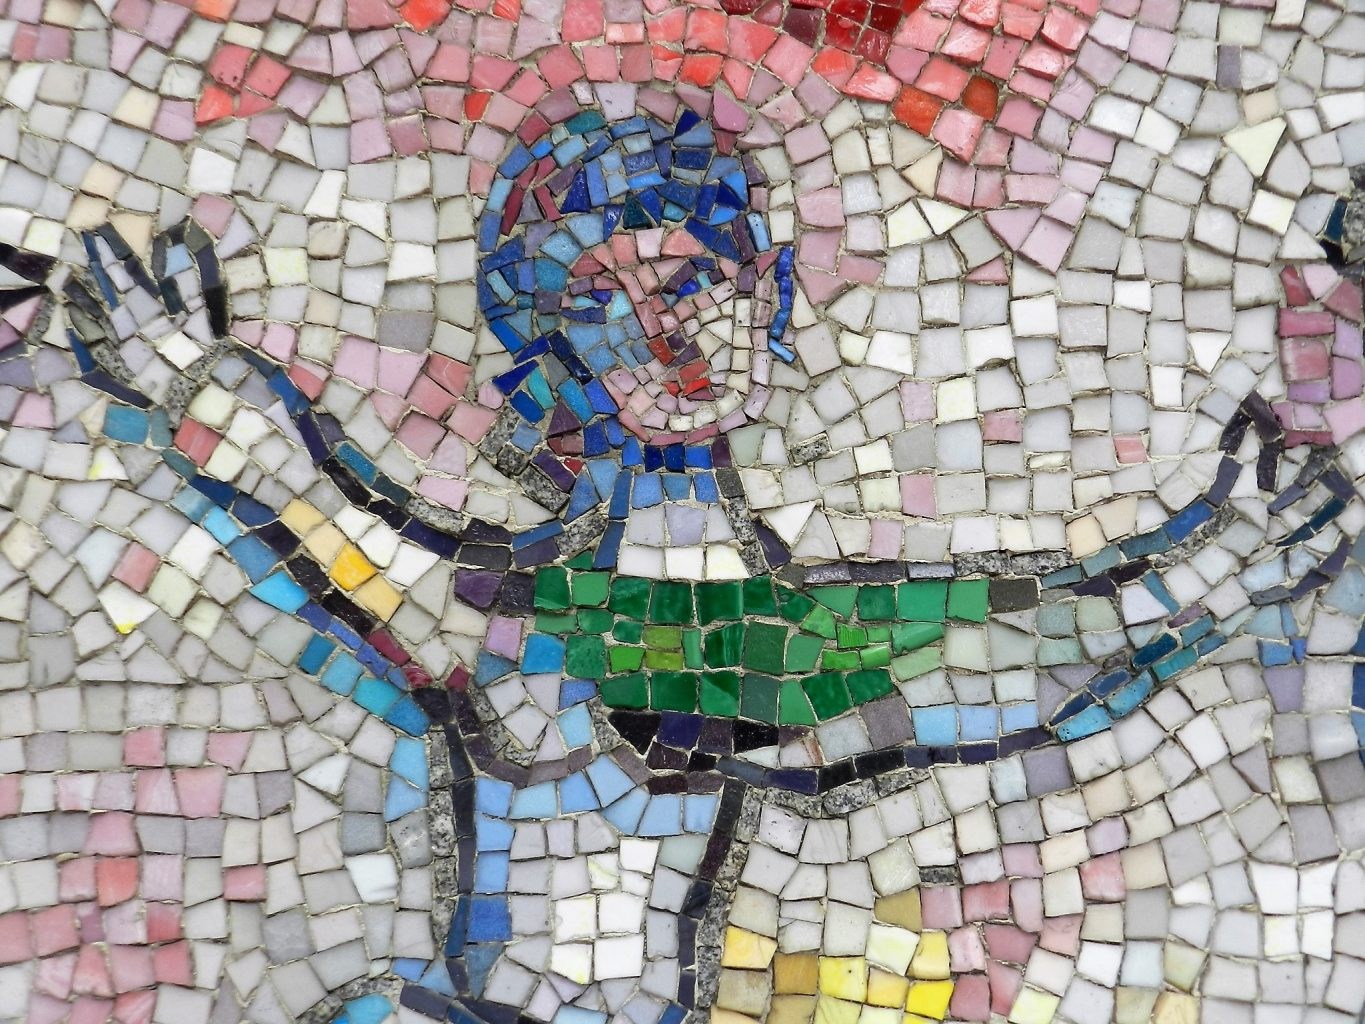 Marc Chagall's Four Seasons mosaic_ dancer detail.